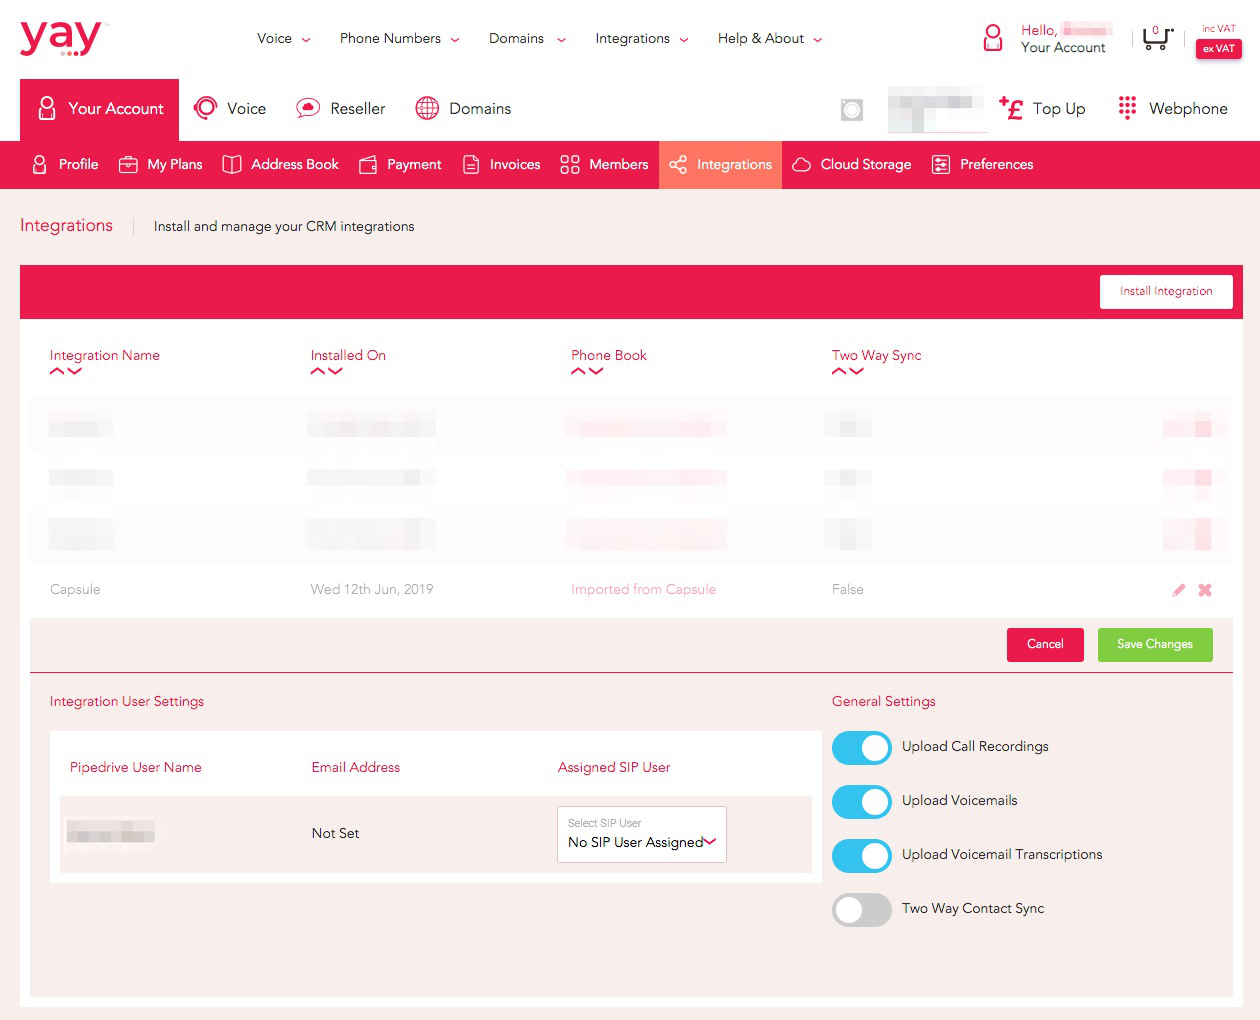 Selecting Capsule permissions from the Yay dashboard